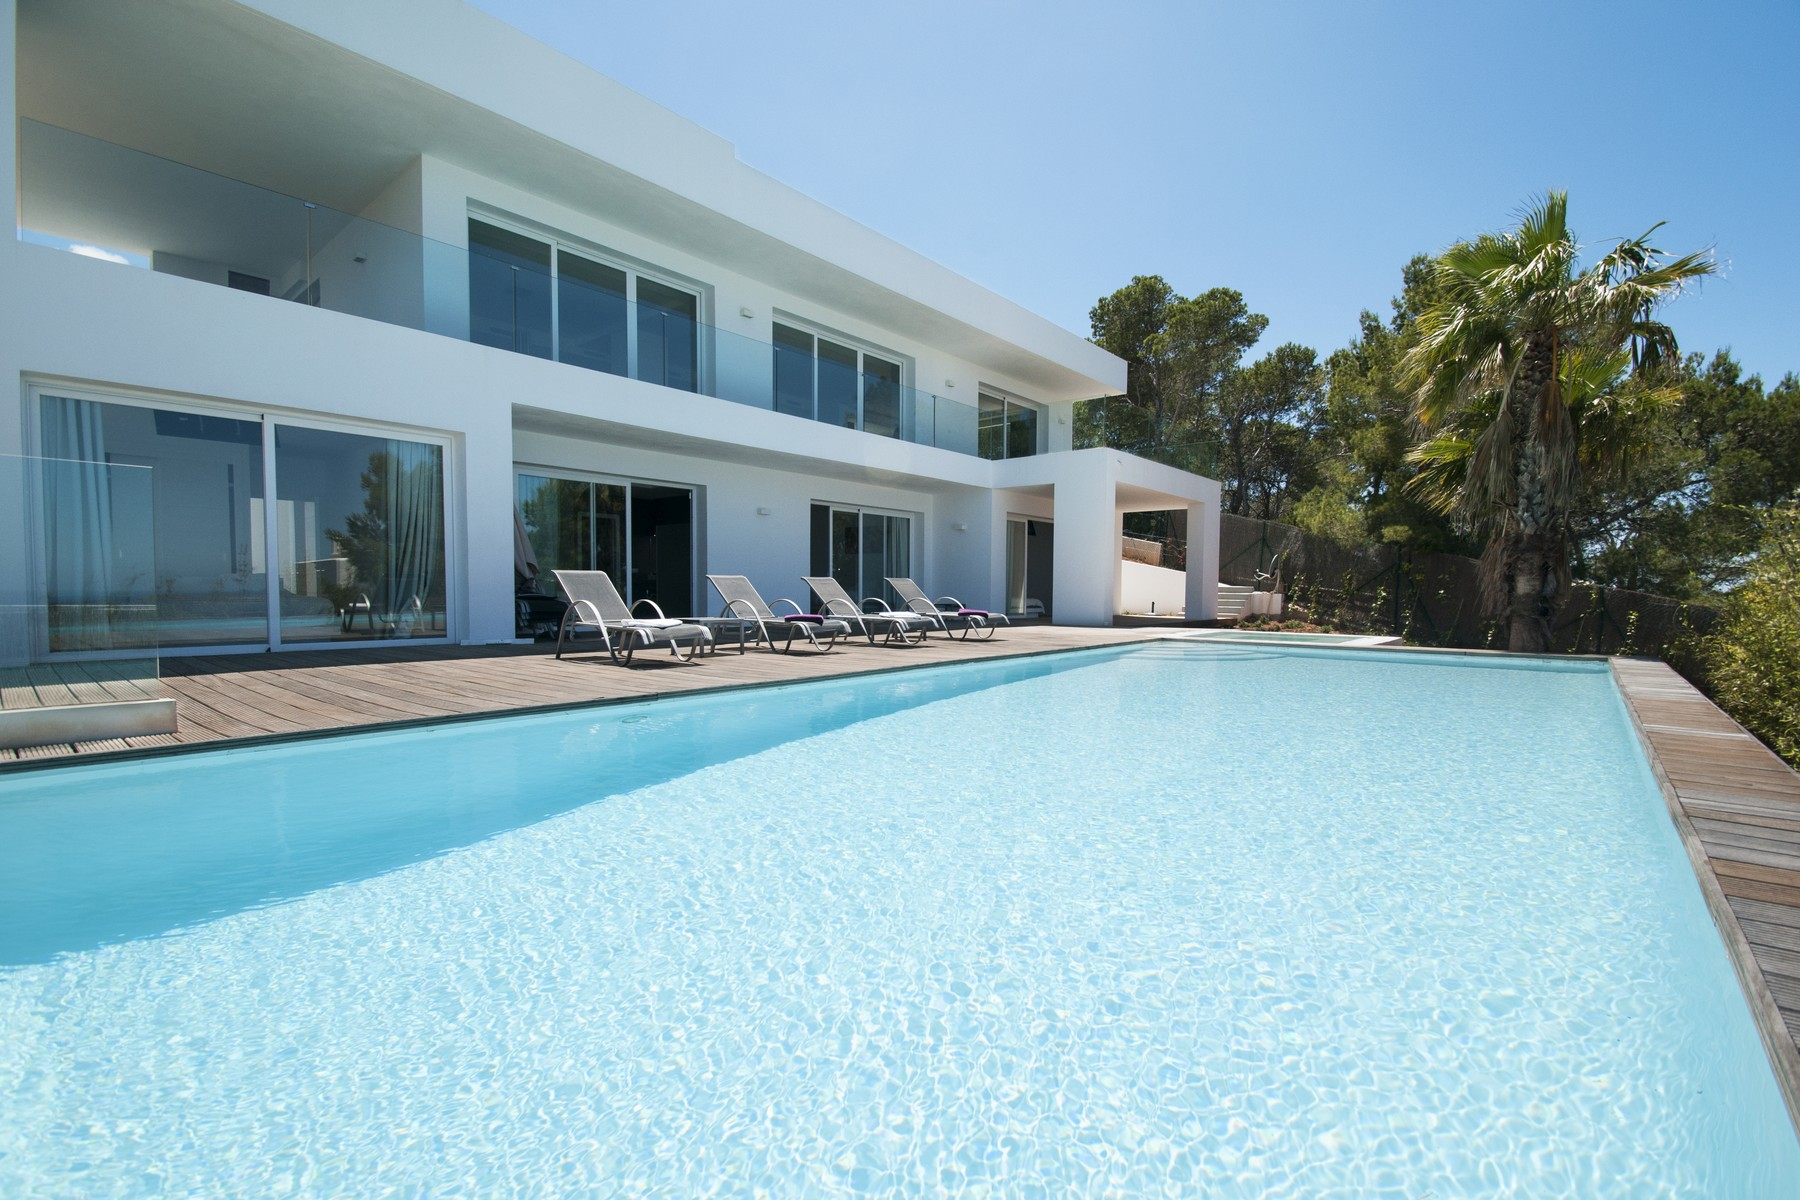 Single Family Home for Sale at Two Home Property with sea view in Cala Molí San Jose, Ibiza, 07830 Spain